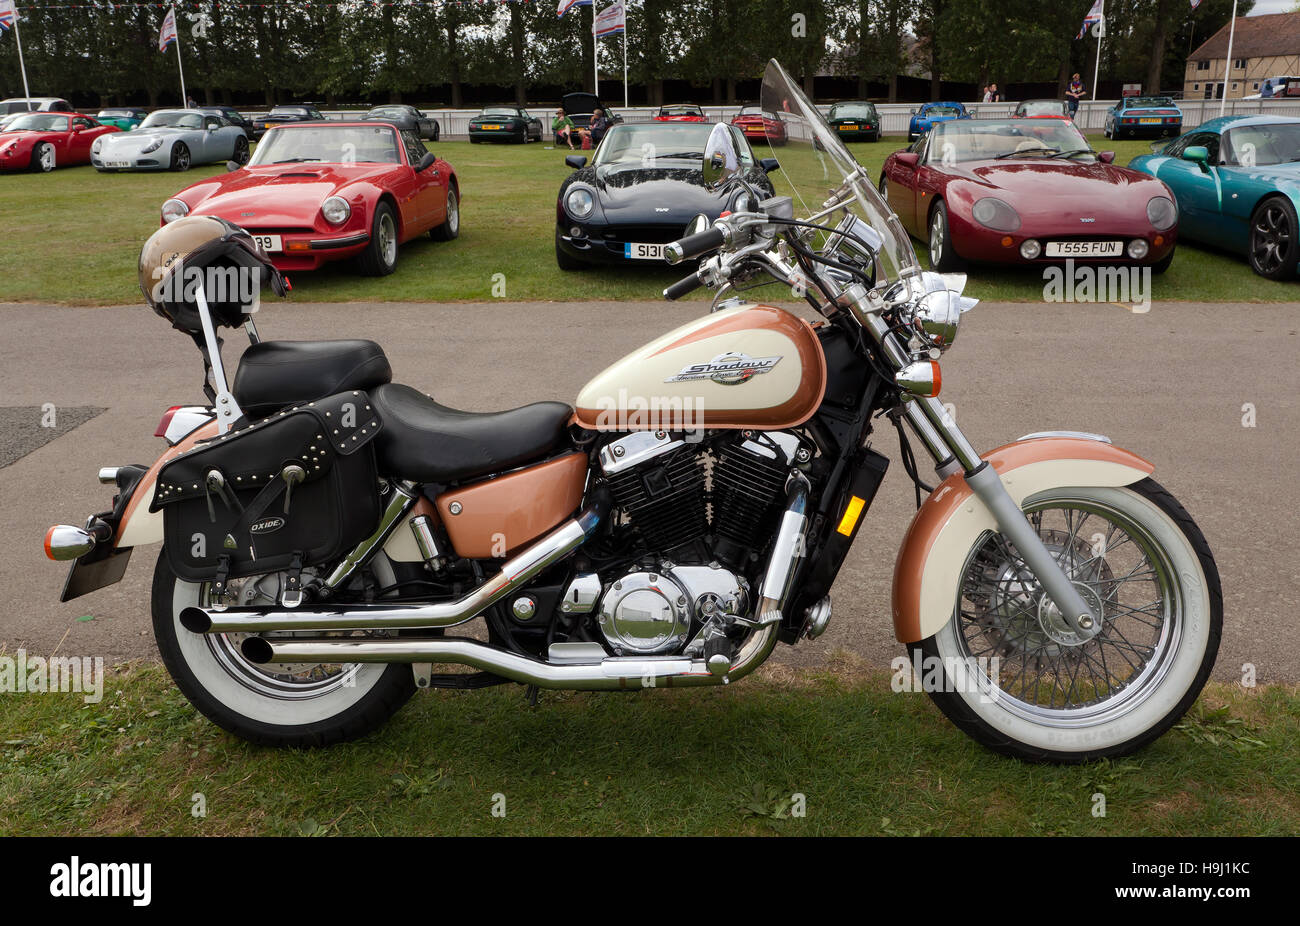 hight resolution of image of a honda shadow motorcycle american classic edition displayed in one of the car club areas of the silverstone classic